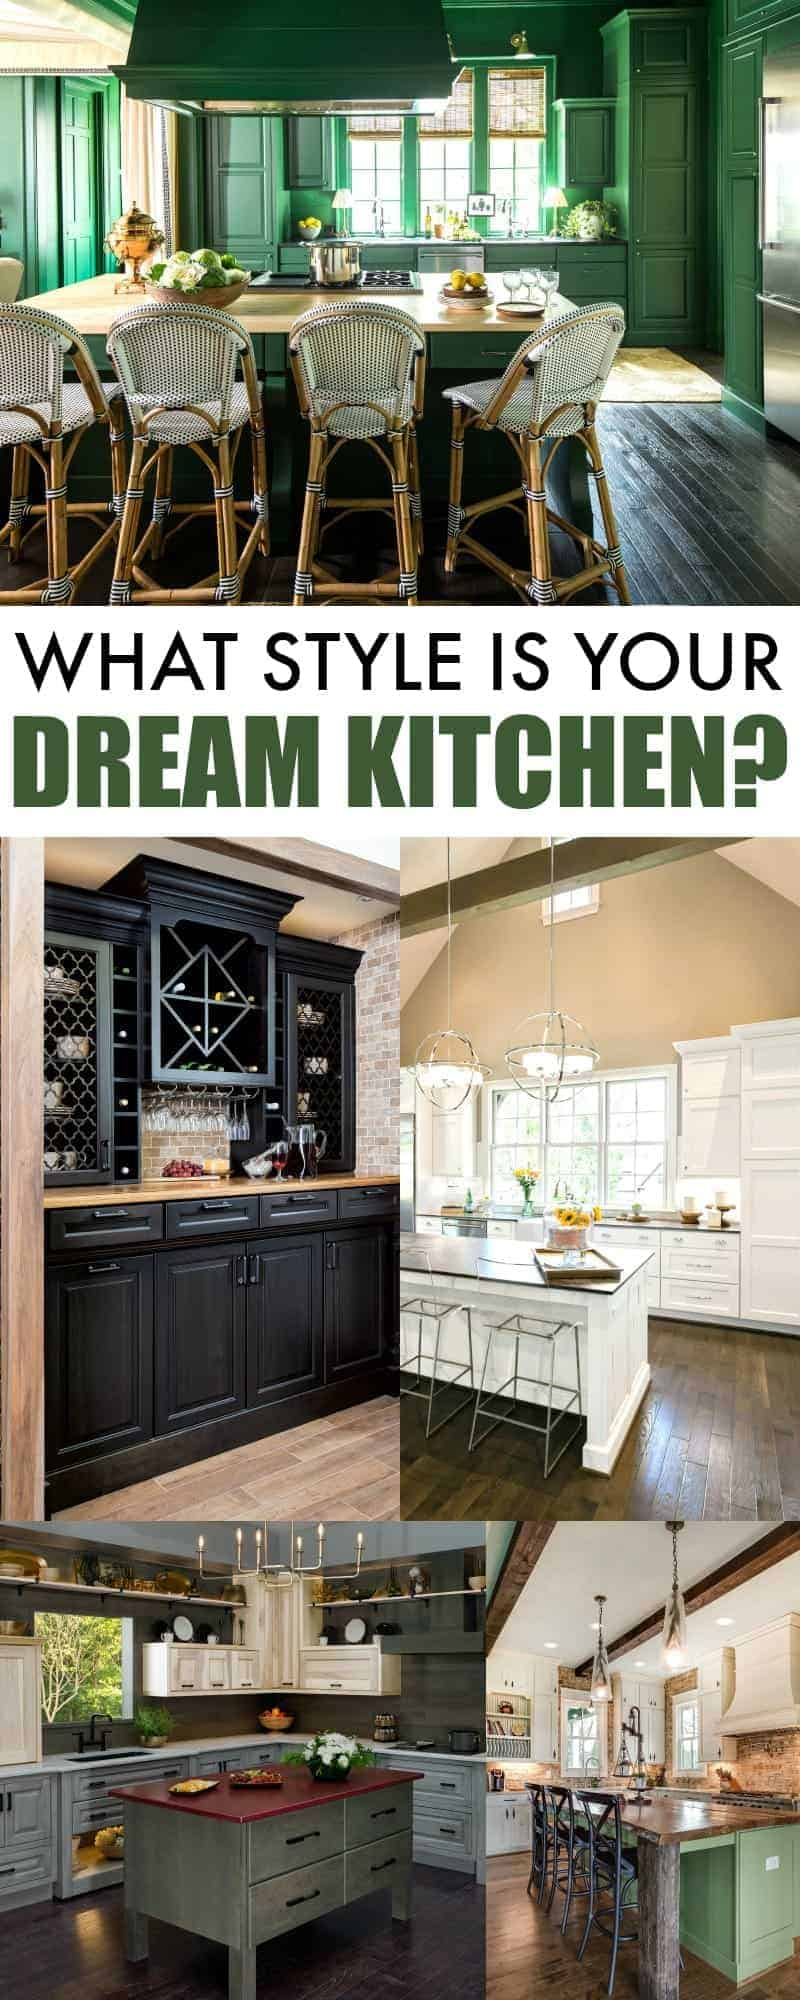 Wellborn Cabinets dream kitchen collage with a series of beautiful kitchen photos